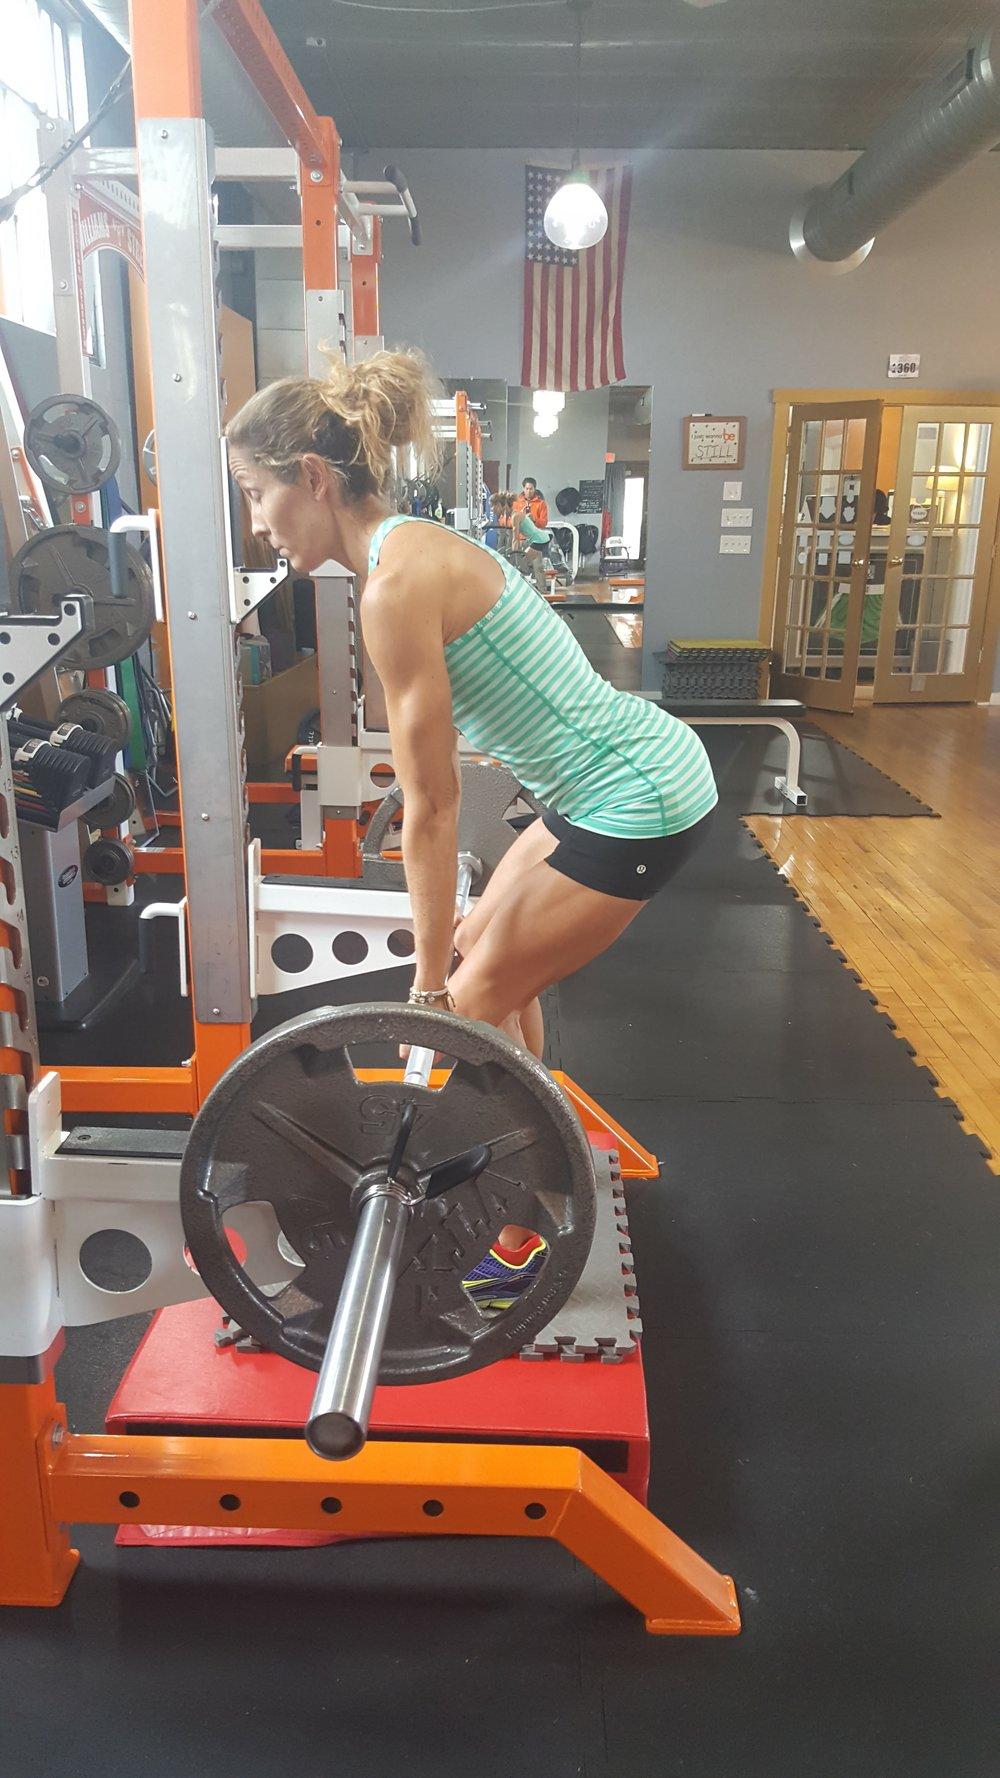 Amy performs a barbell rack lift to improve the force production of her gluteals and hamstrings.  This exercise also improves her core strength.